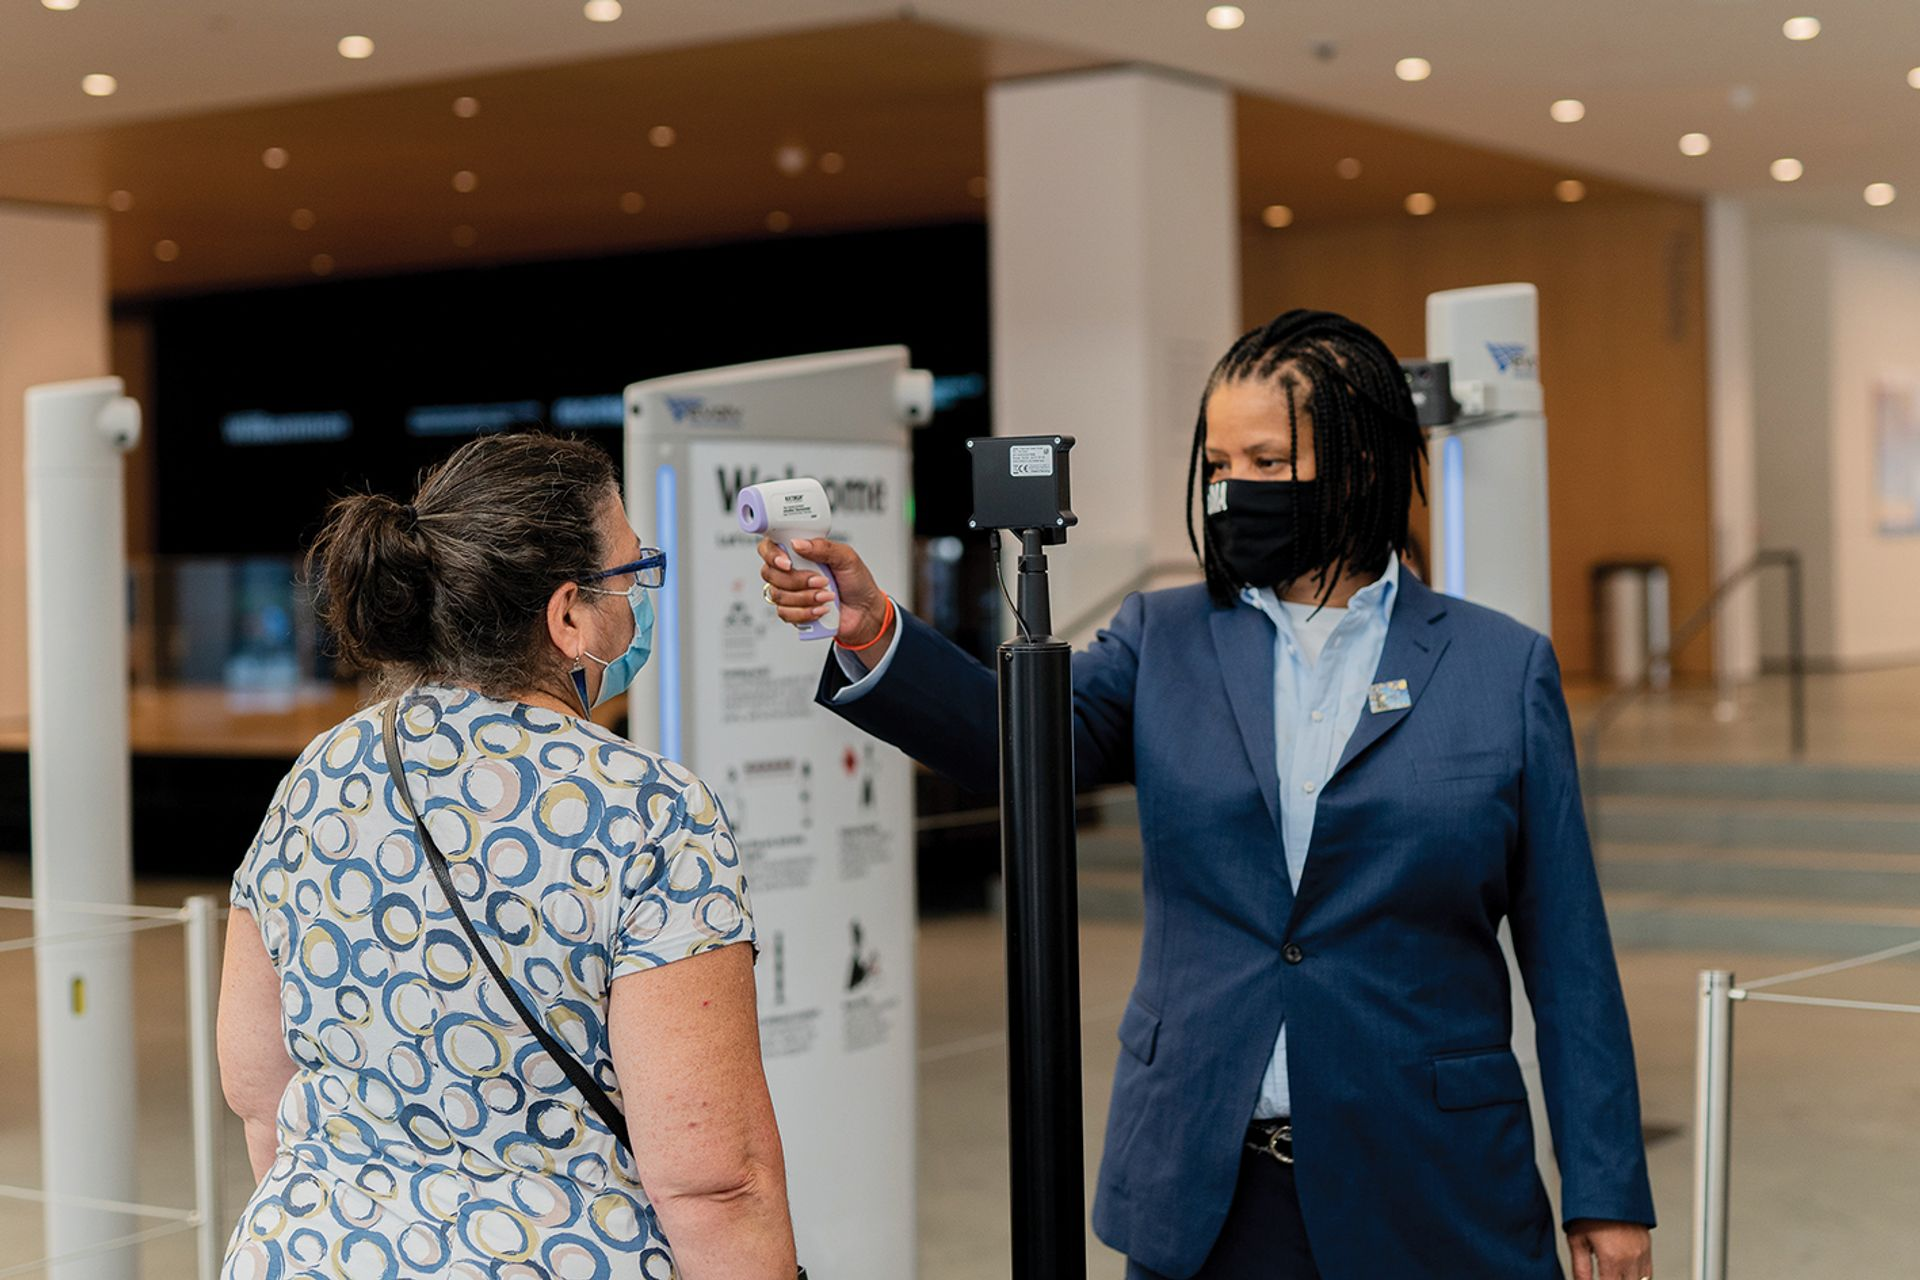 Zapping Covid: safety measures at New York's Museum of Modern Art include temperature checks and mandatory face masks © Amir Hamja/Bloomberg via Getty Images